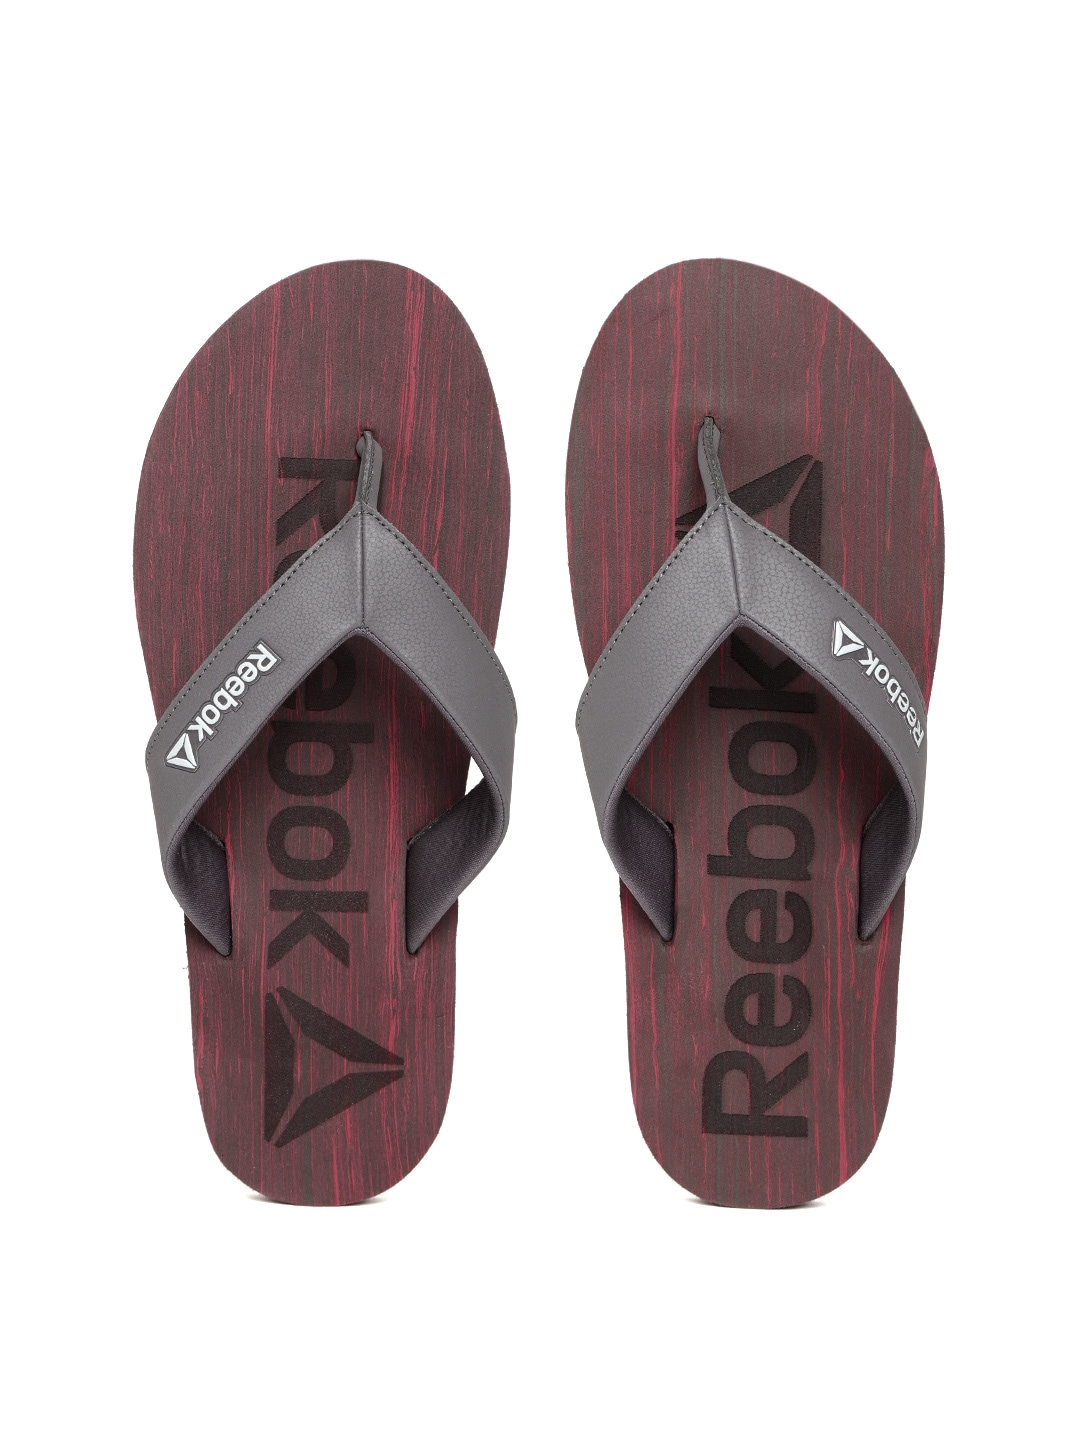 1154290f1 Men Sandal Reebok Footwear Flip Flops - Buy Men Sandal Reebok Footwear Flip  Flops online in India